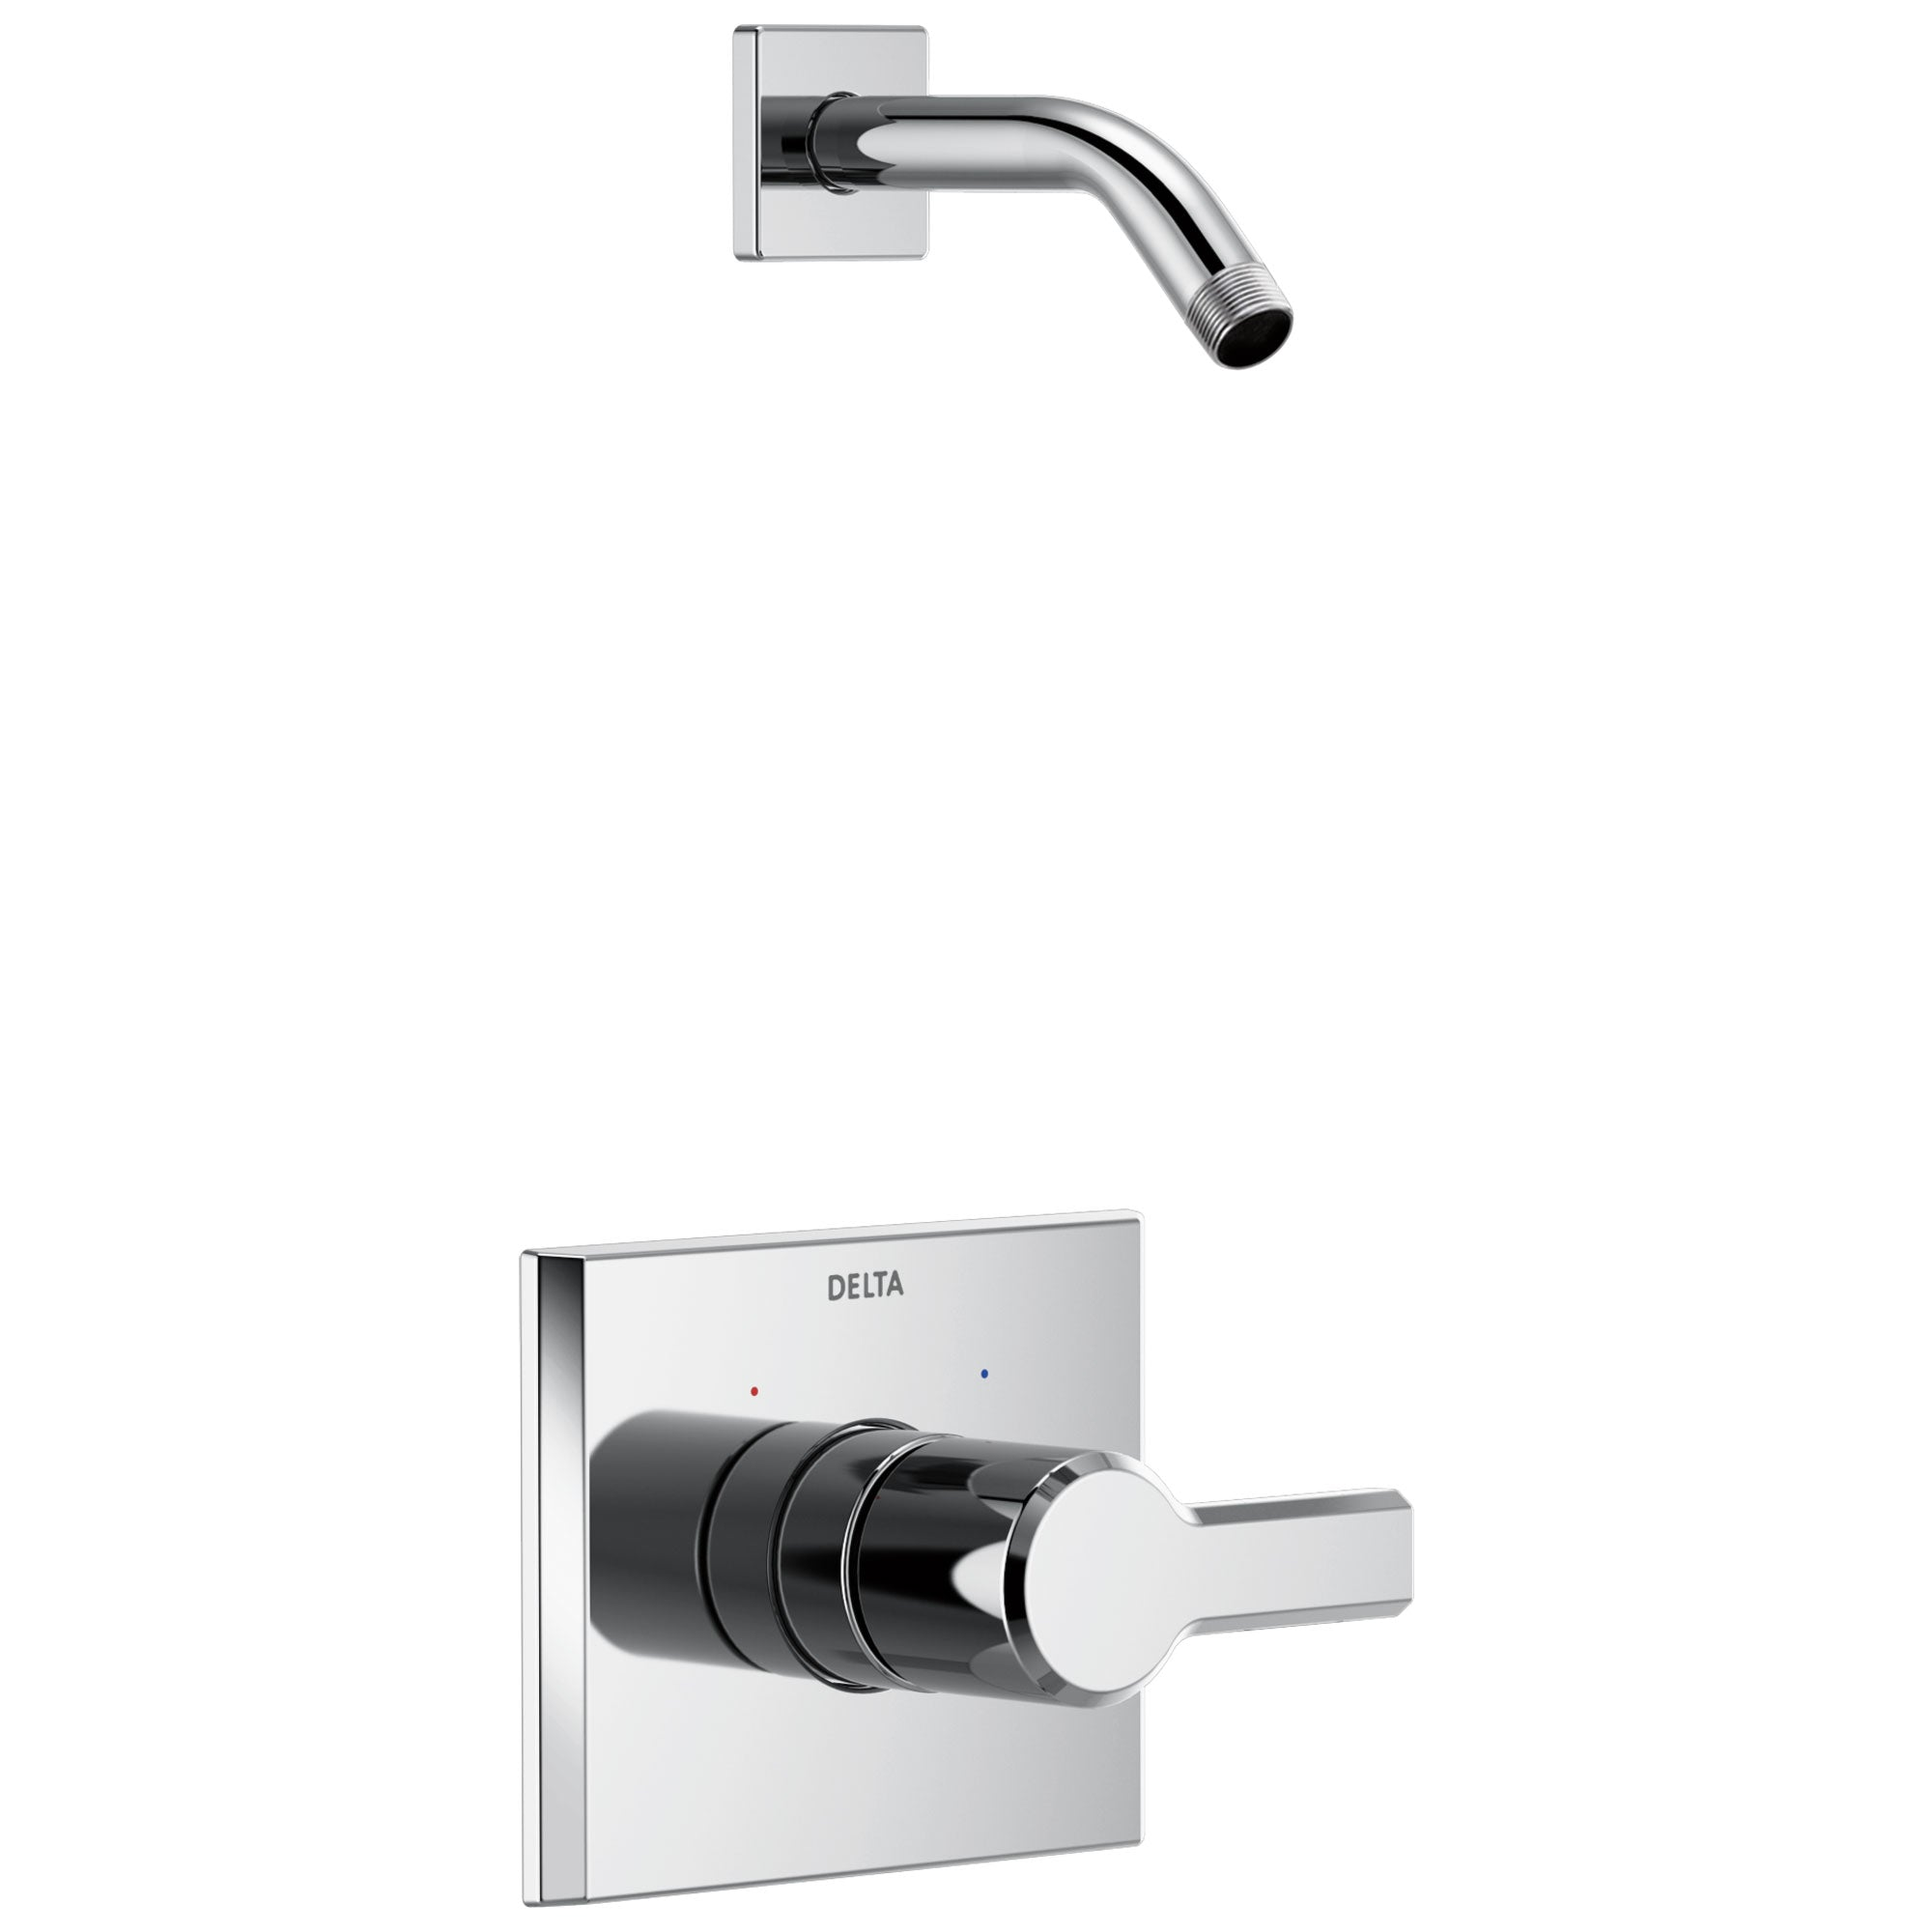 Delta Pivotal Chrome Finish 14 Series Shower only Faucet Less Showerhead Includes Single Handle, Cartridge, and Valve without Stops D3477V